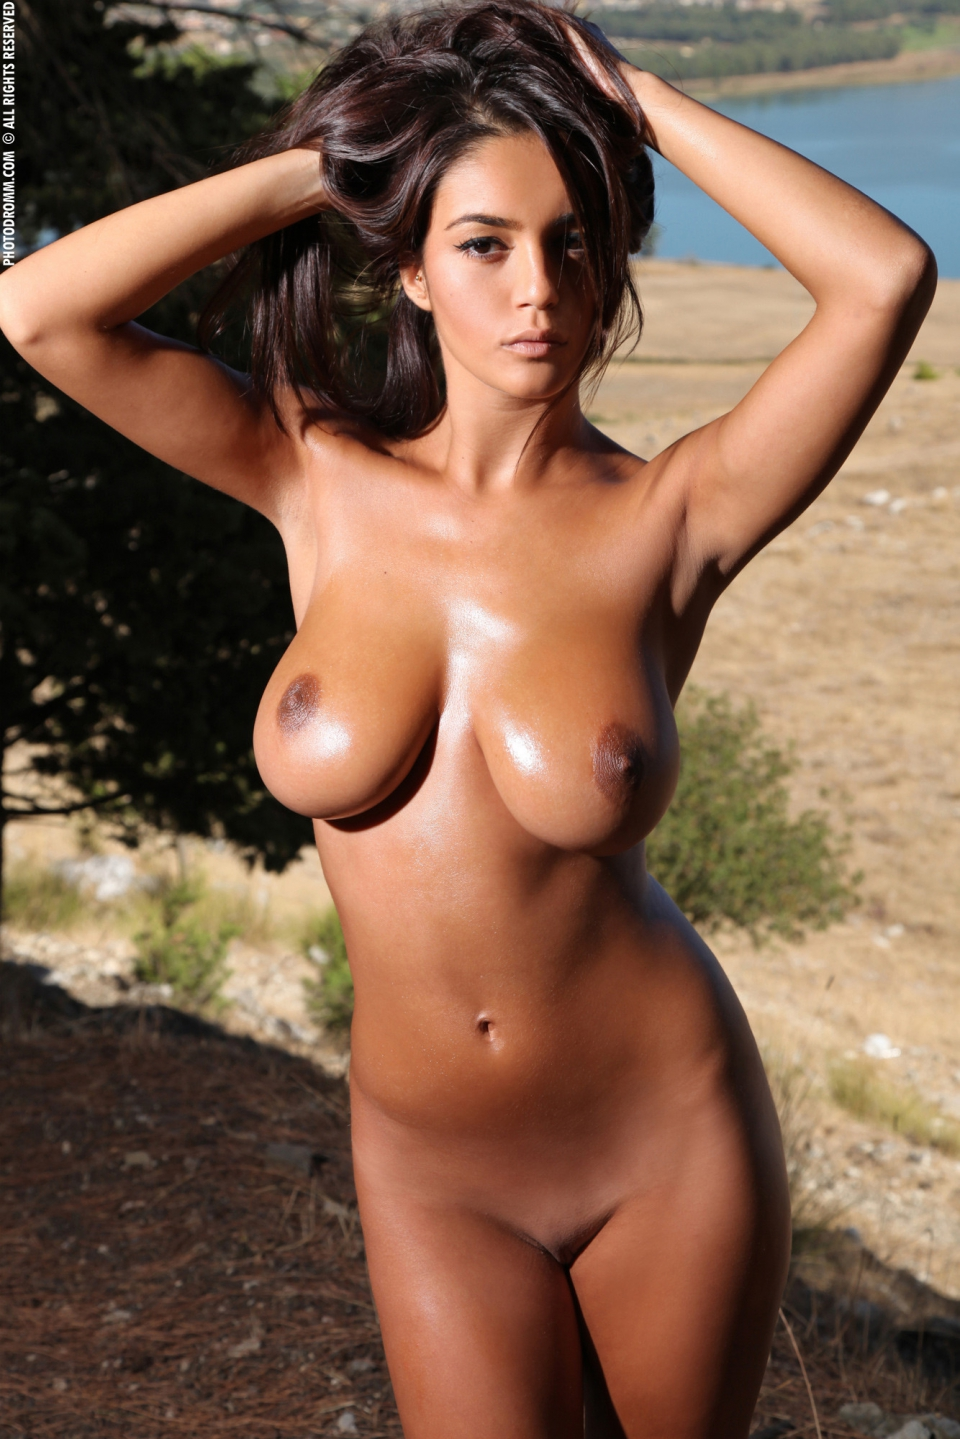 girls from middle east nude